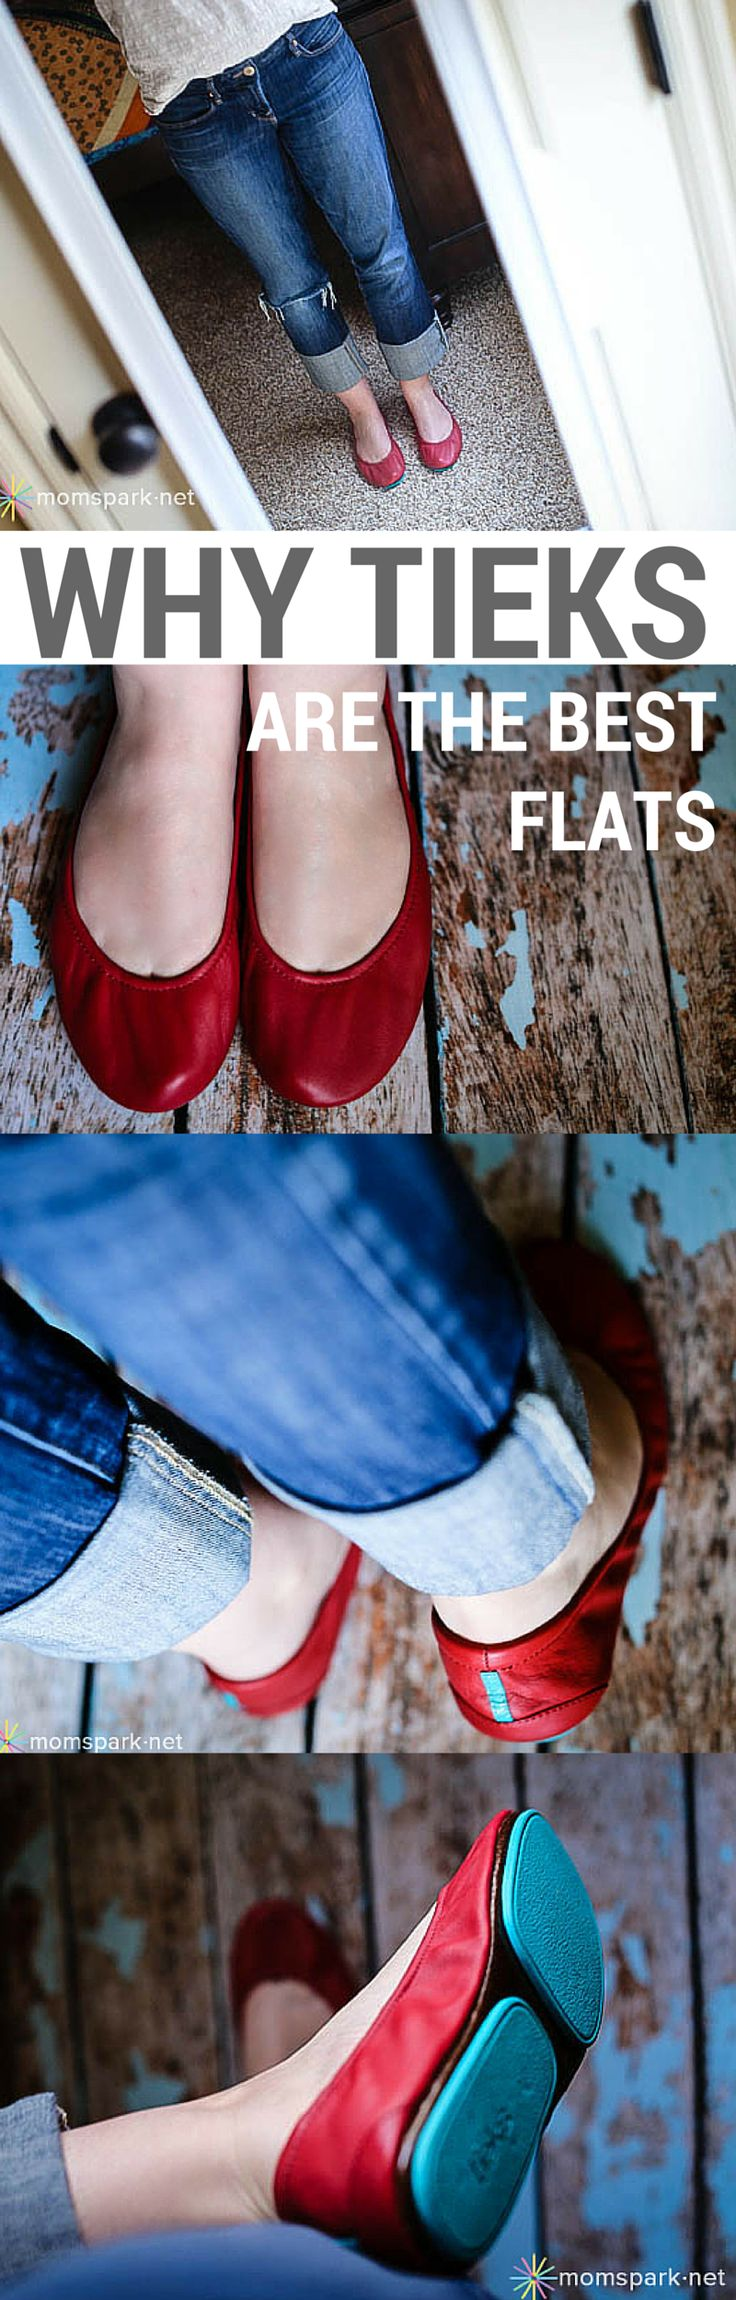 Why Tieks are the best flats